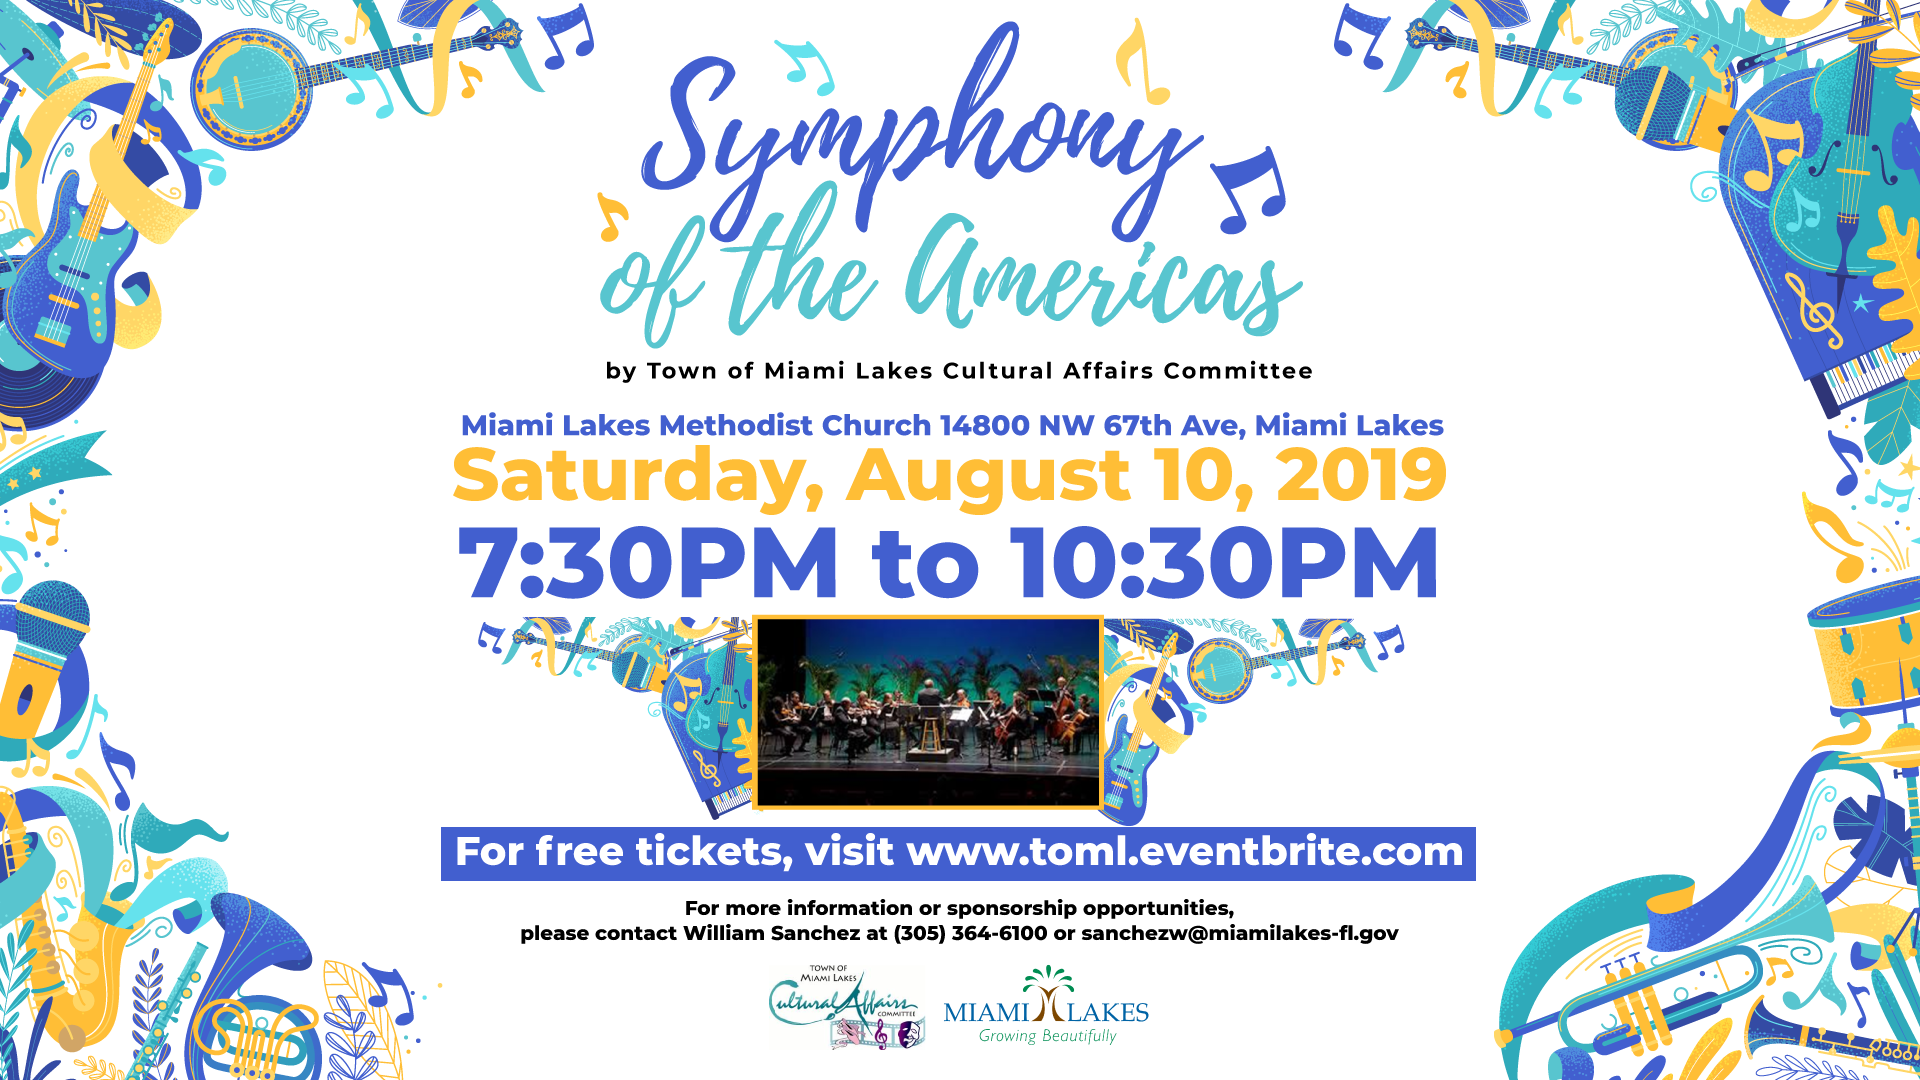 Symphony of the Americas Flyer